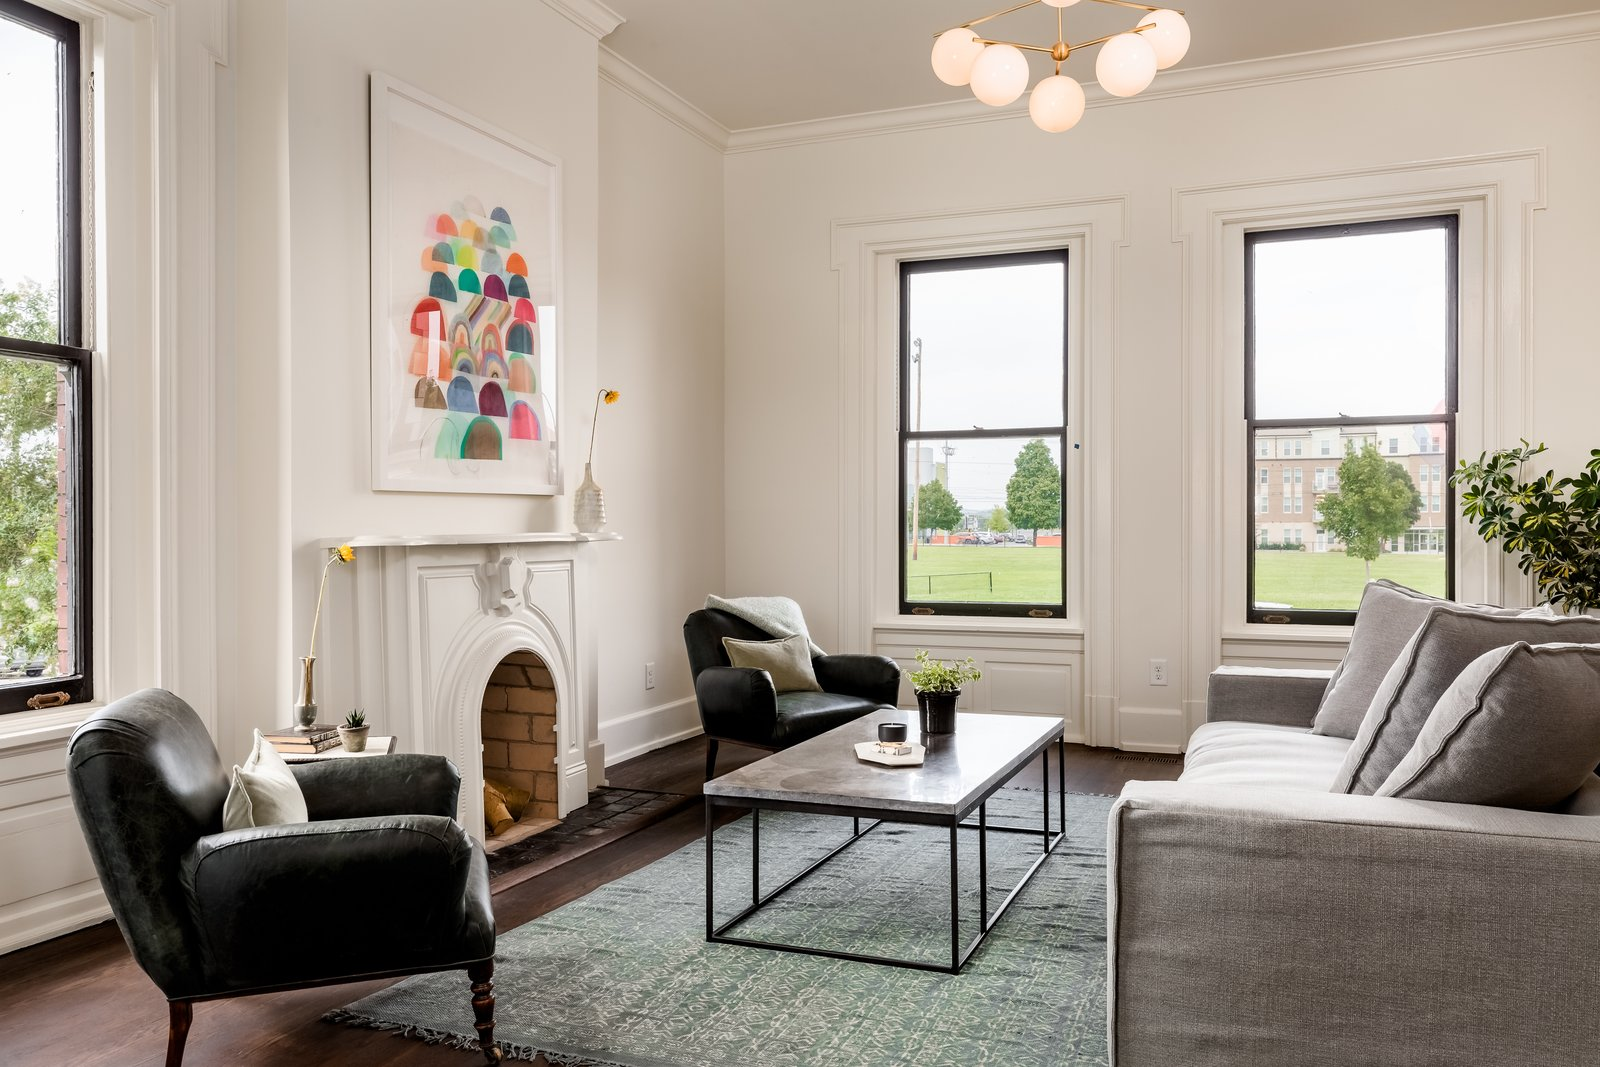 Photo 3 of 14 in Modern Interiors Shine Behind the 19th-Century Facade of This Nashville Home, Now Asking $2.1M